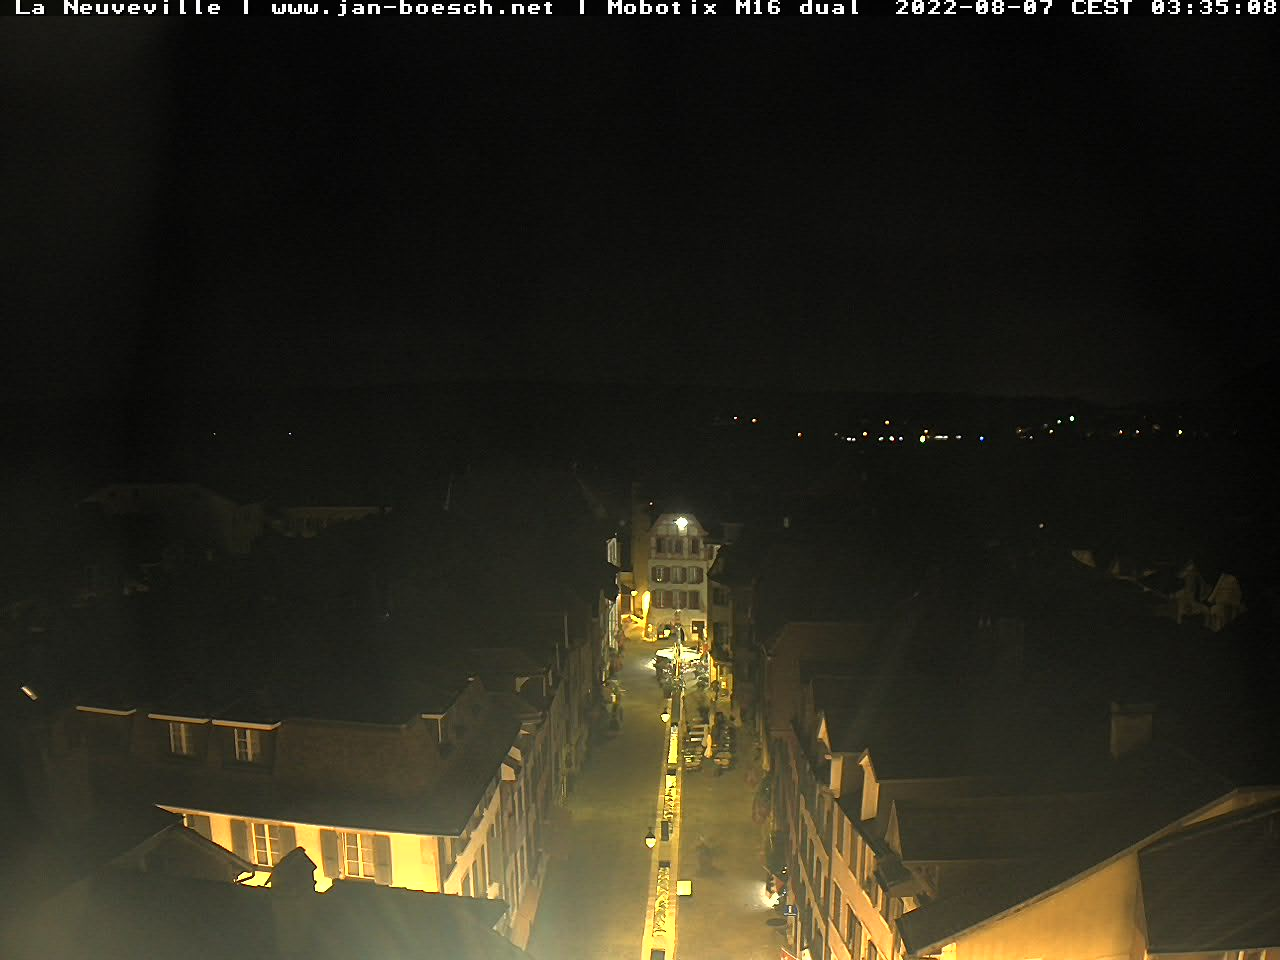 Webcam de La Neuveville (Tour Rouge, vue direction Sud)